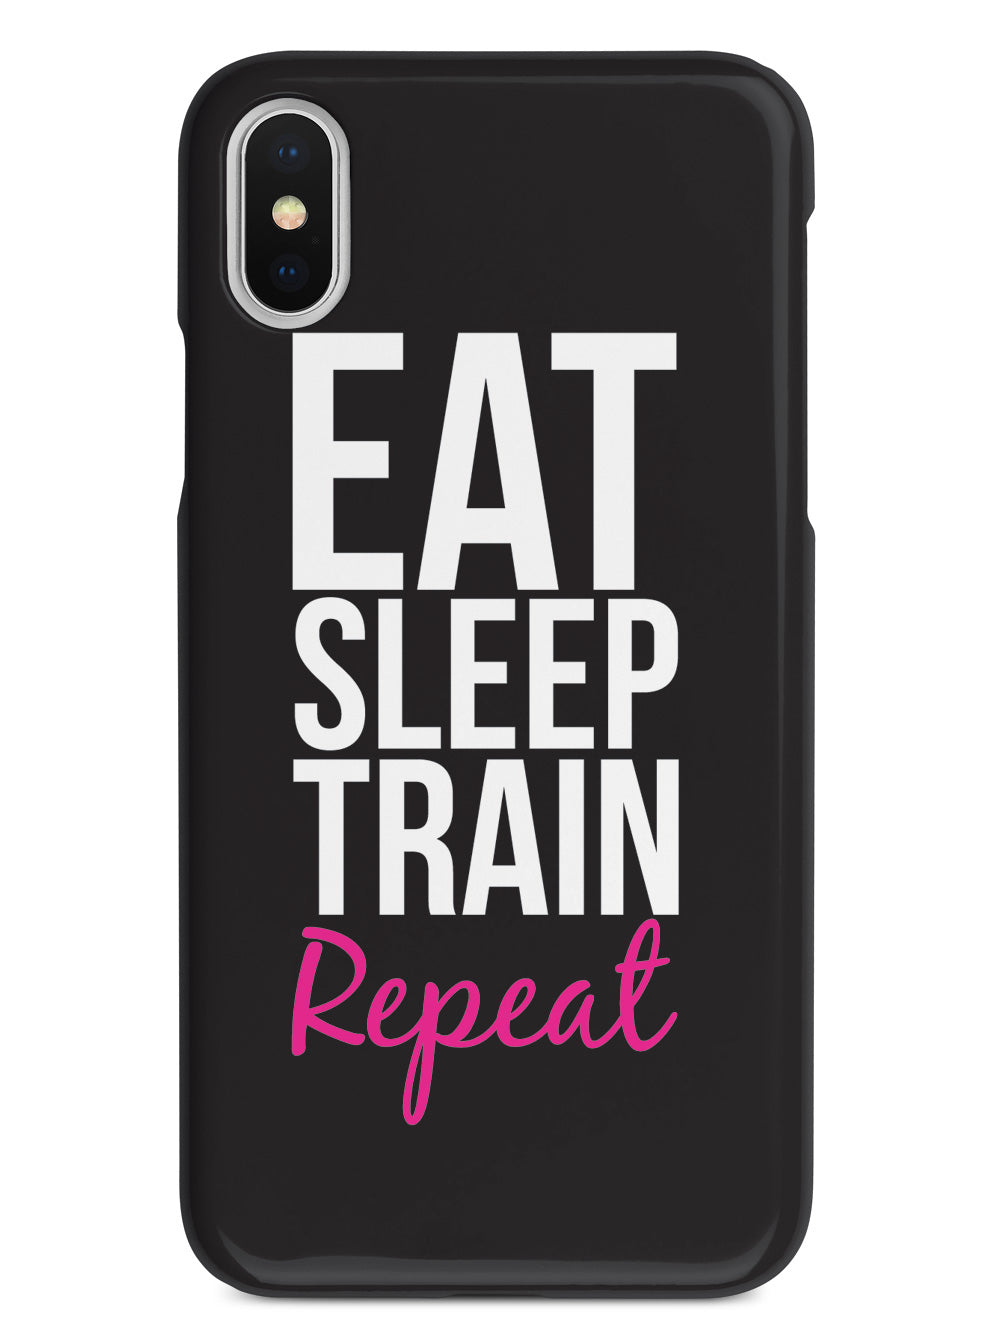 Eat, Sleep, Train, Repeat - Gym Work Out Case